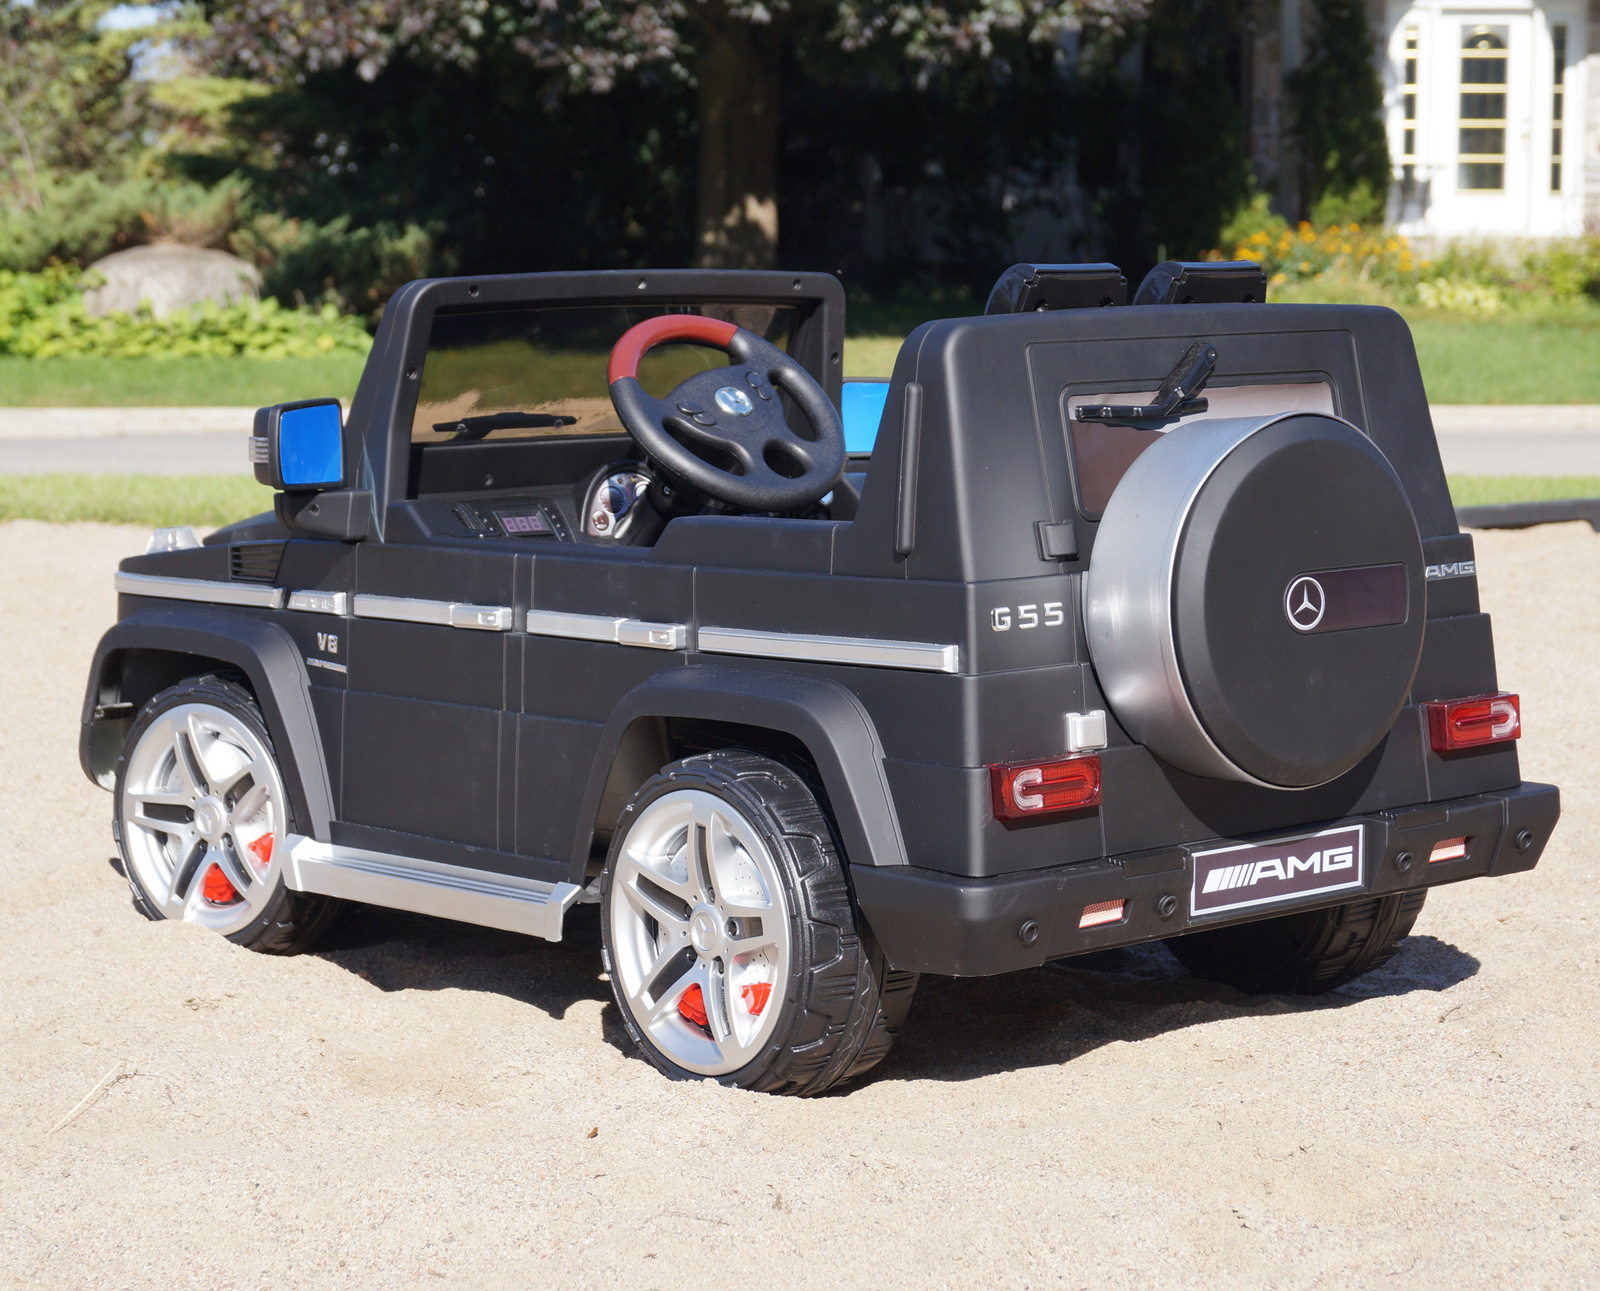 Mercedes benz g55 amg 2 seat kids ride on battery powered for Mercedes benz 2 seater cars